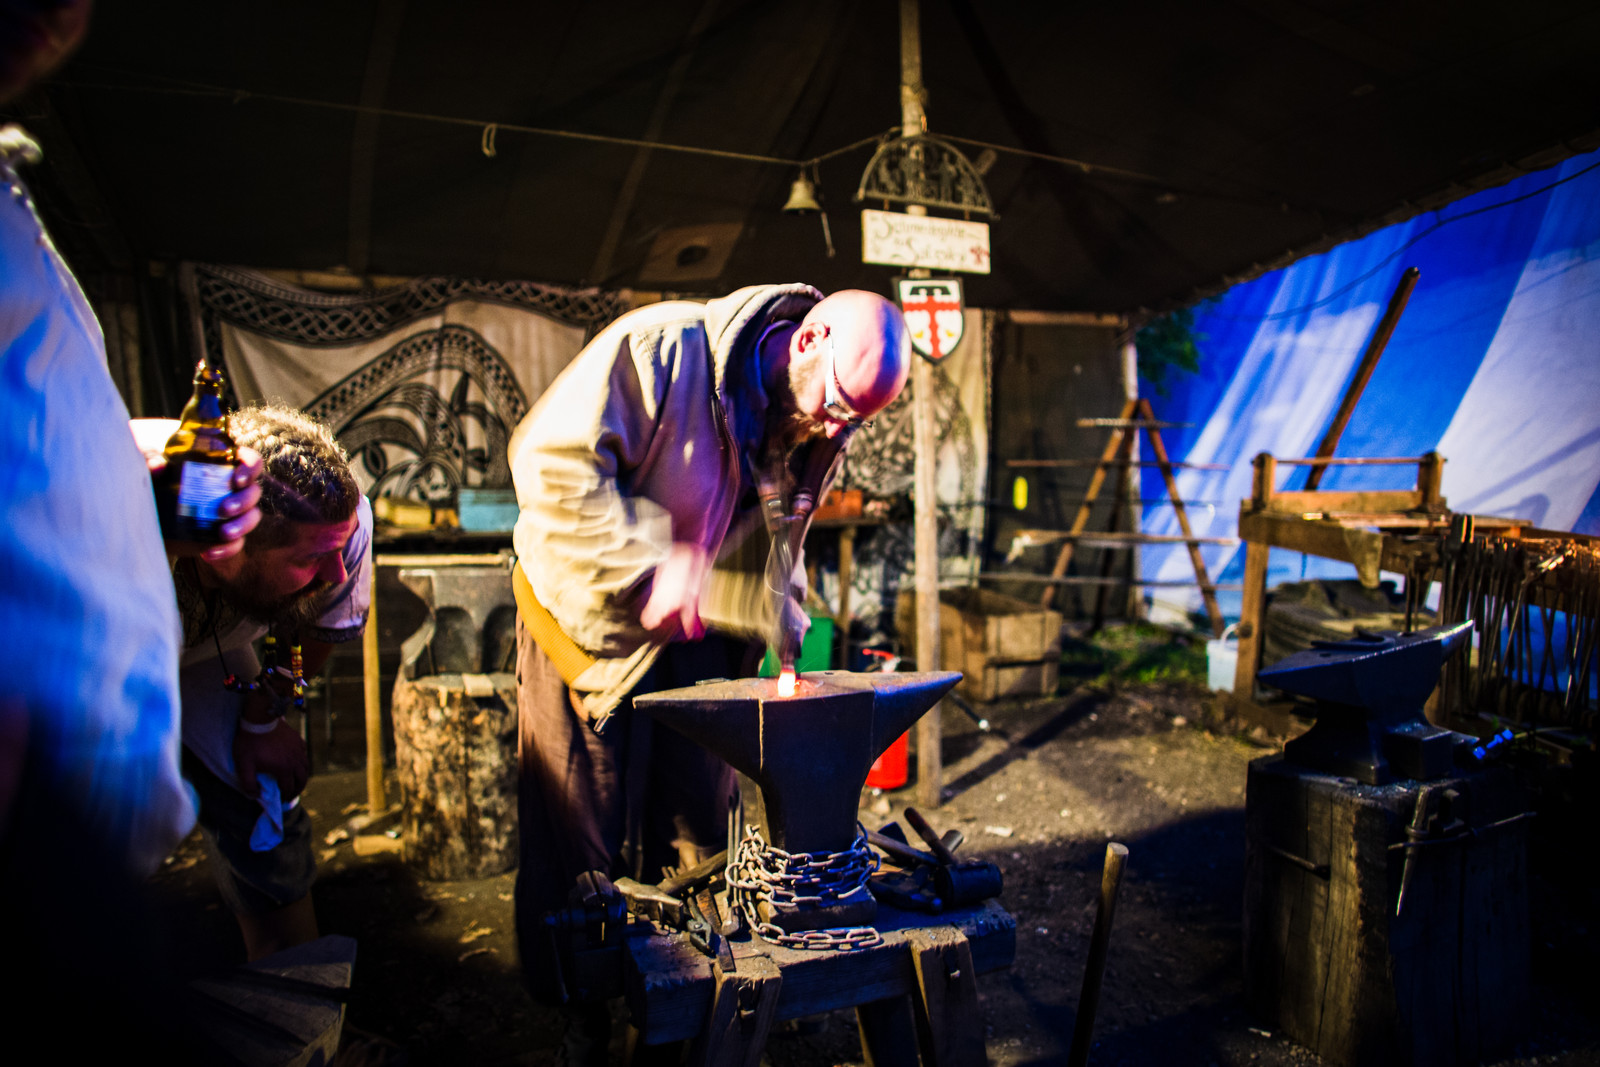 blacksmith-at-work-medieval